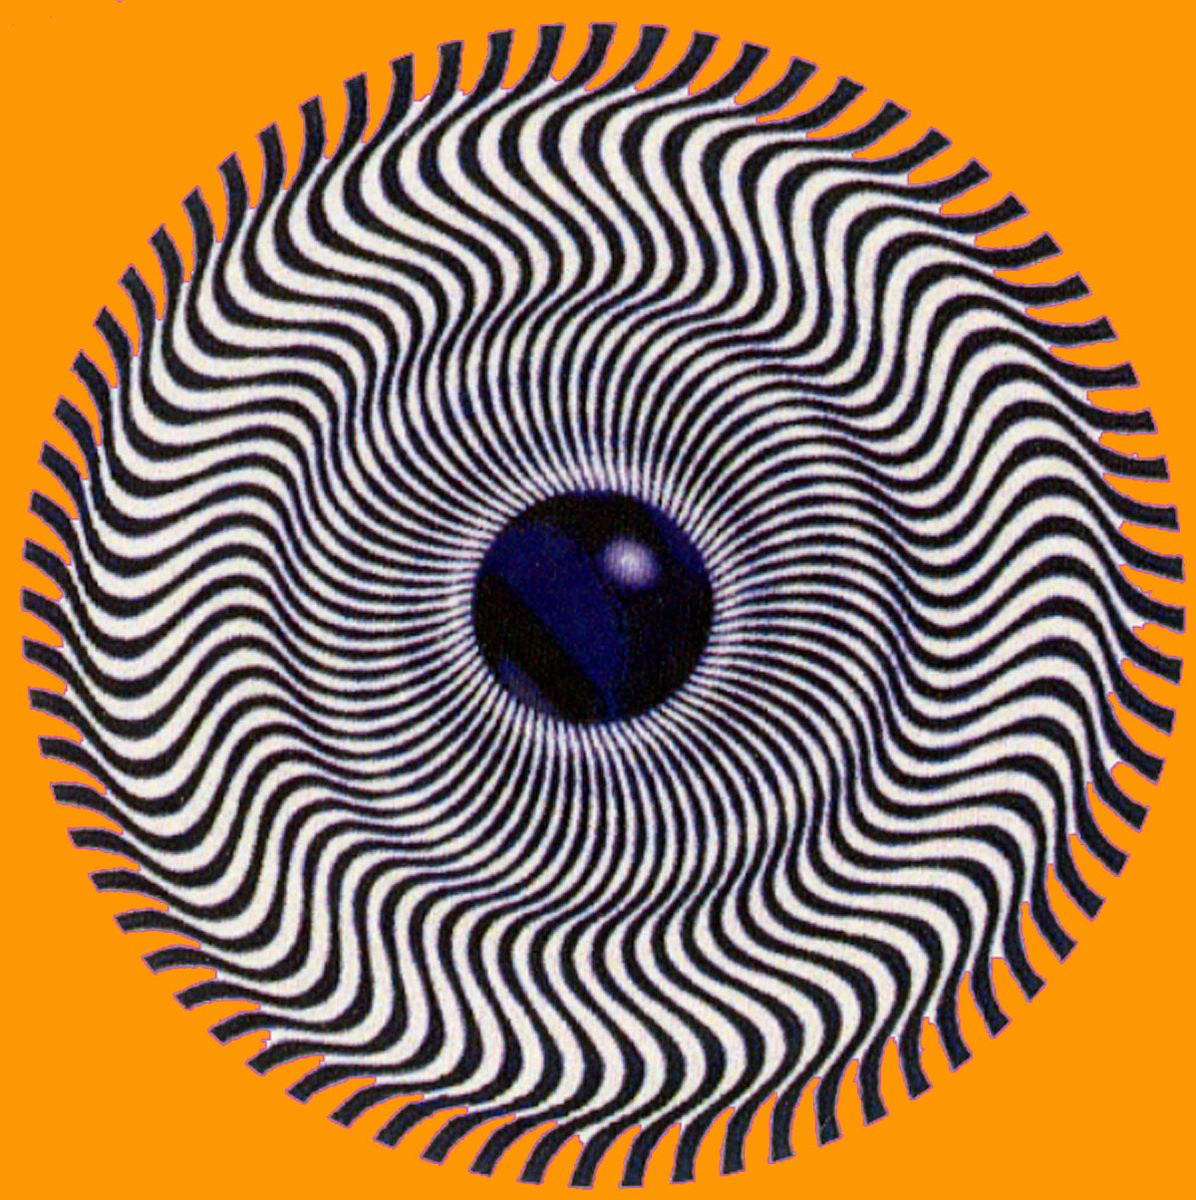 An optical illusion, looking somewhat like an eye, where curved lines radiating out from a center black dot appear to be moving